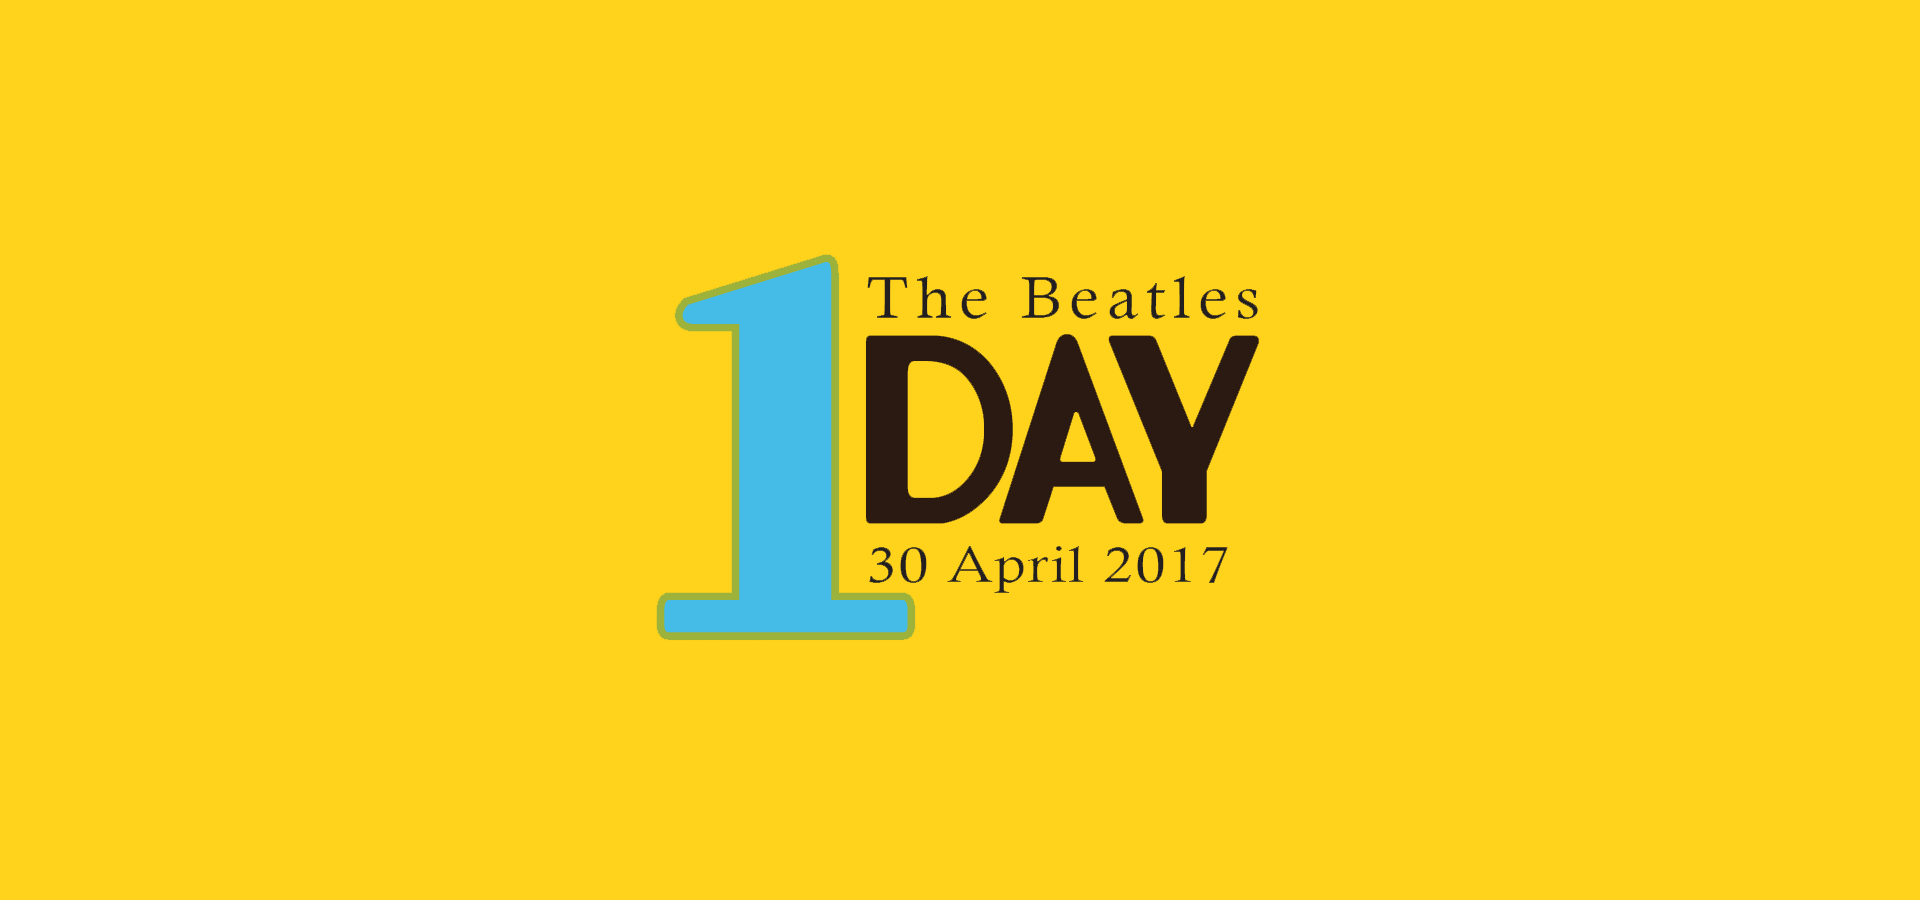 The Beatles 1Day: a fab London festival